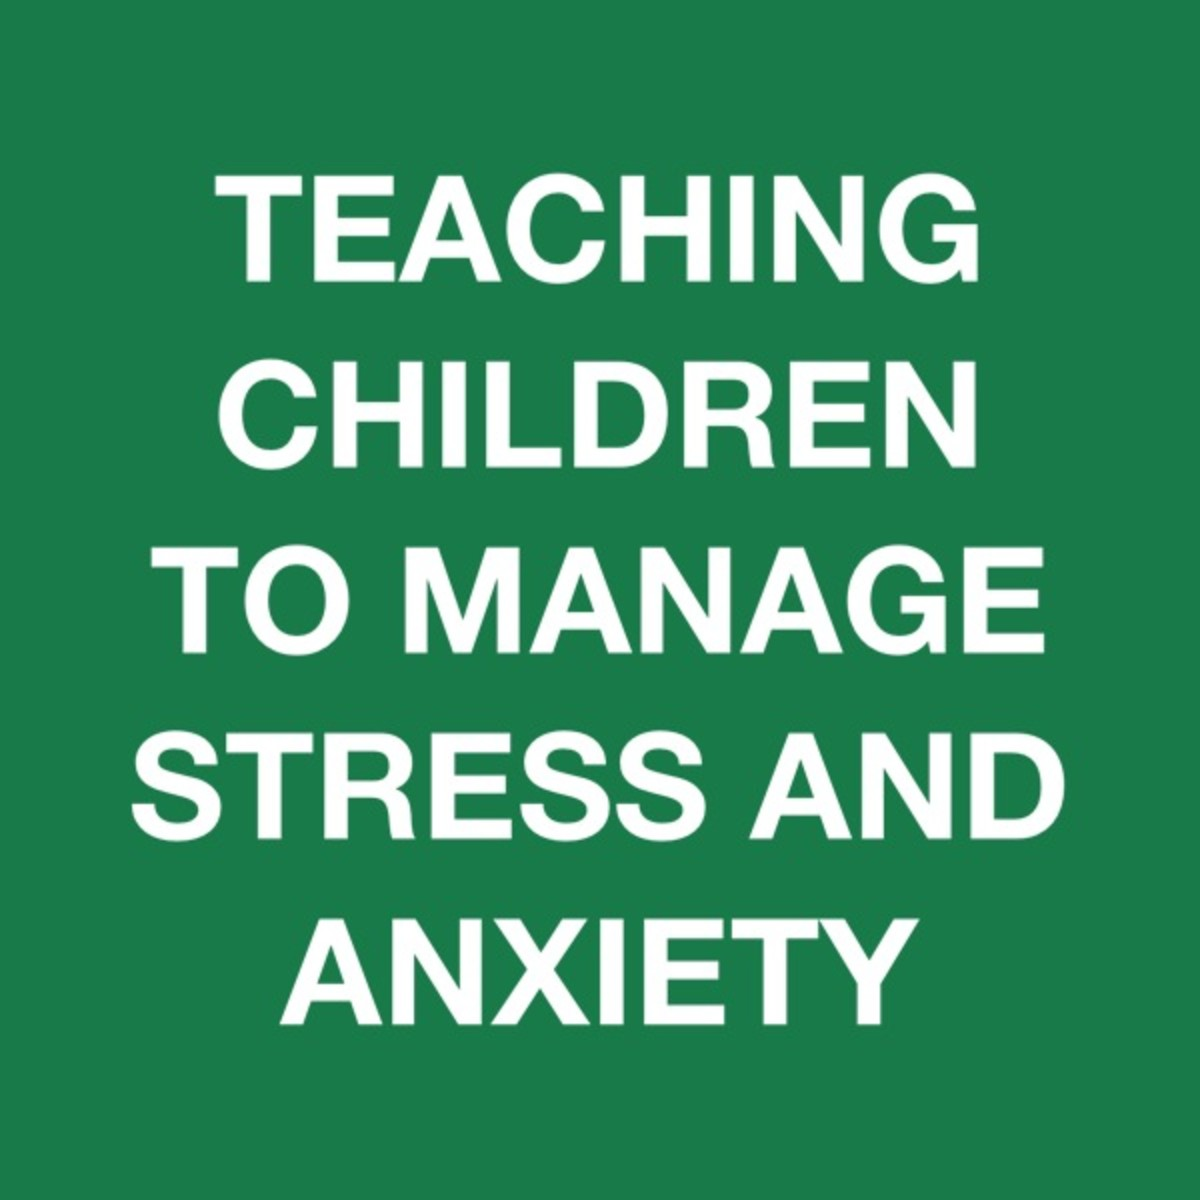 Teaching Children to Manage Stress and Anxiety HubPages